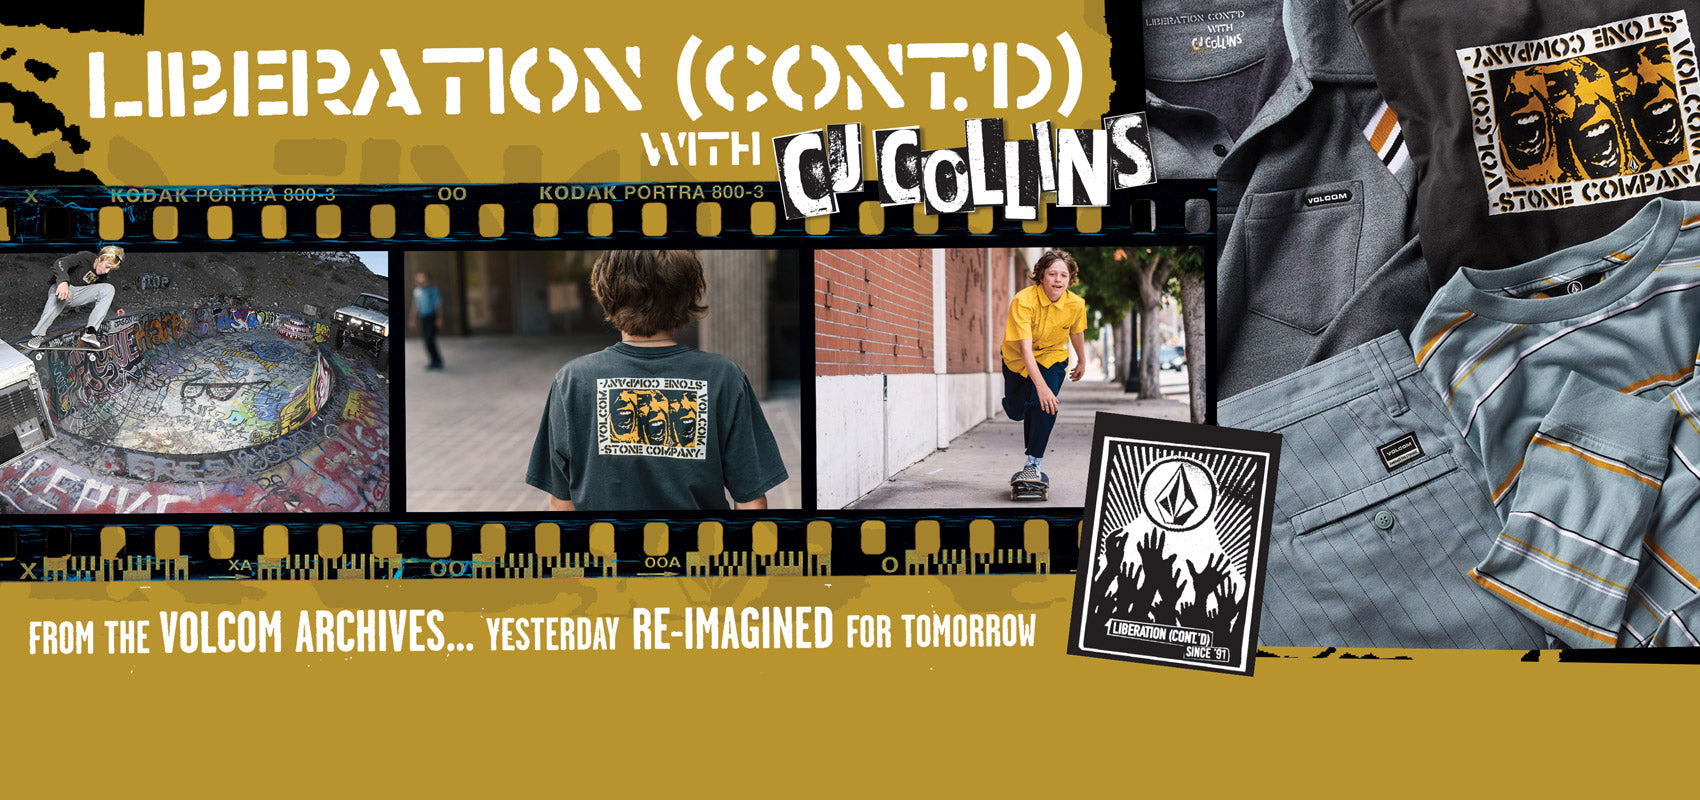 Liberation Cont'd with CJ Collins.  A Volcom apparel collection inspired from the Volcom archives.